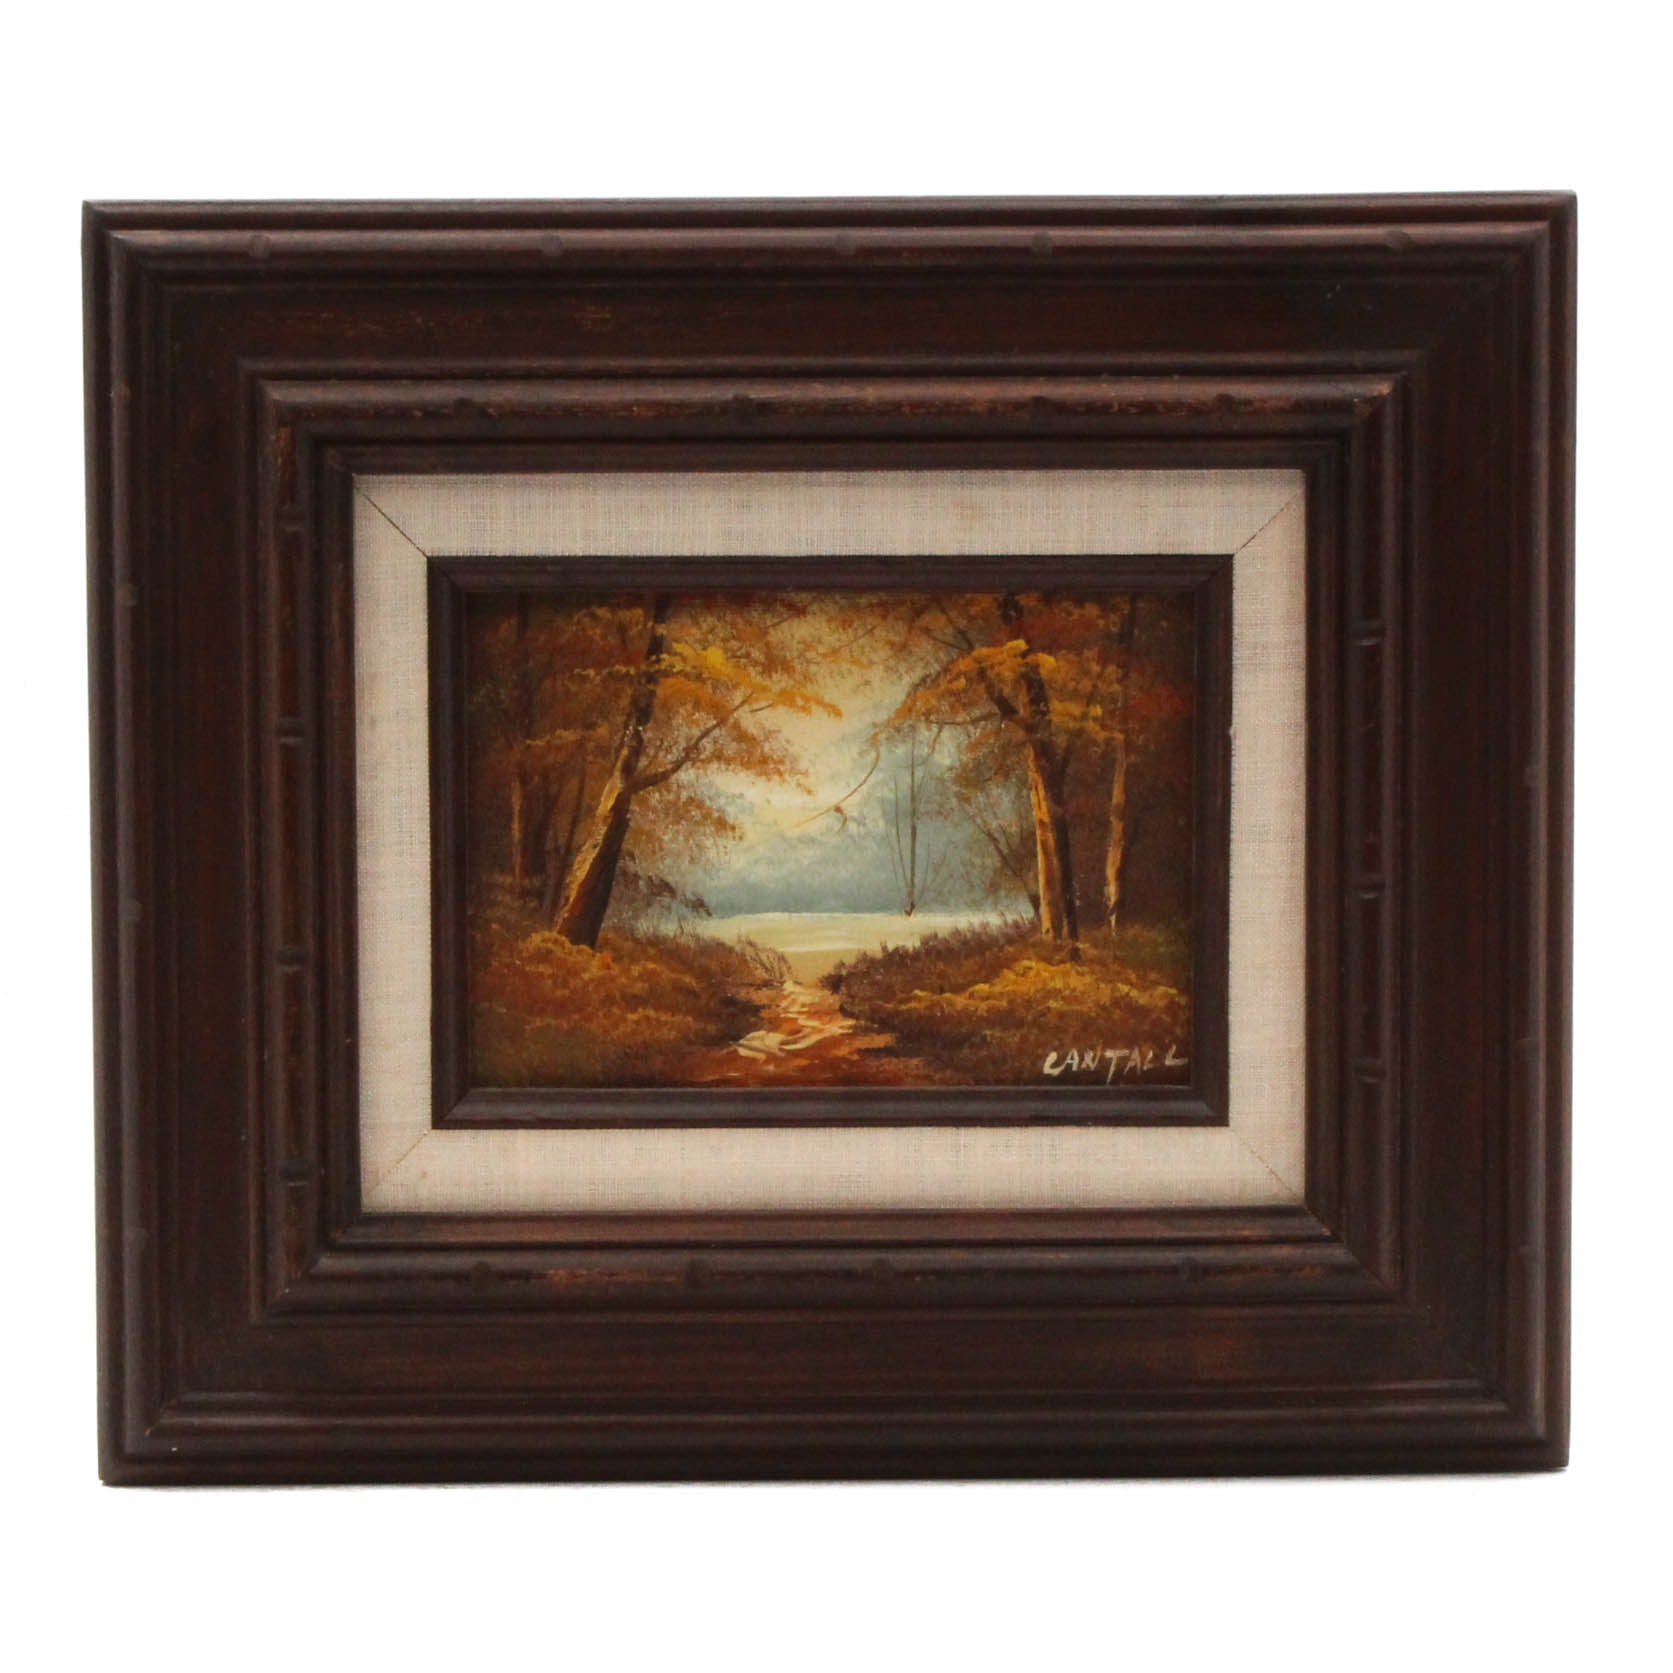 Lantall Oil Painting of Autumnal Landscape